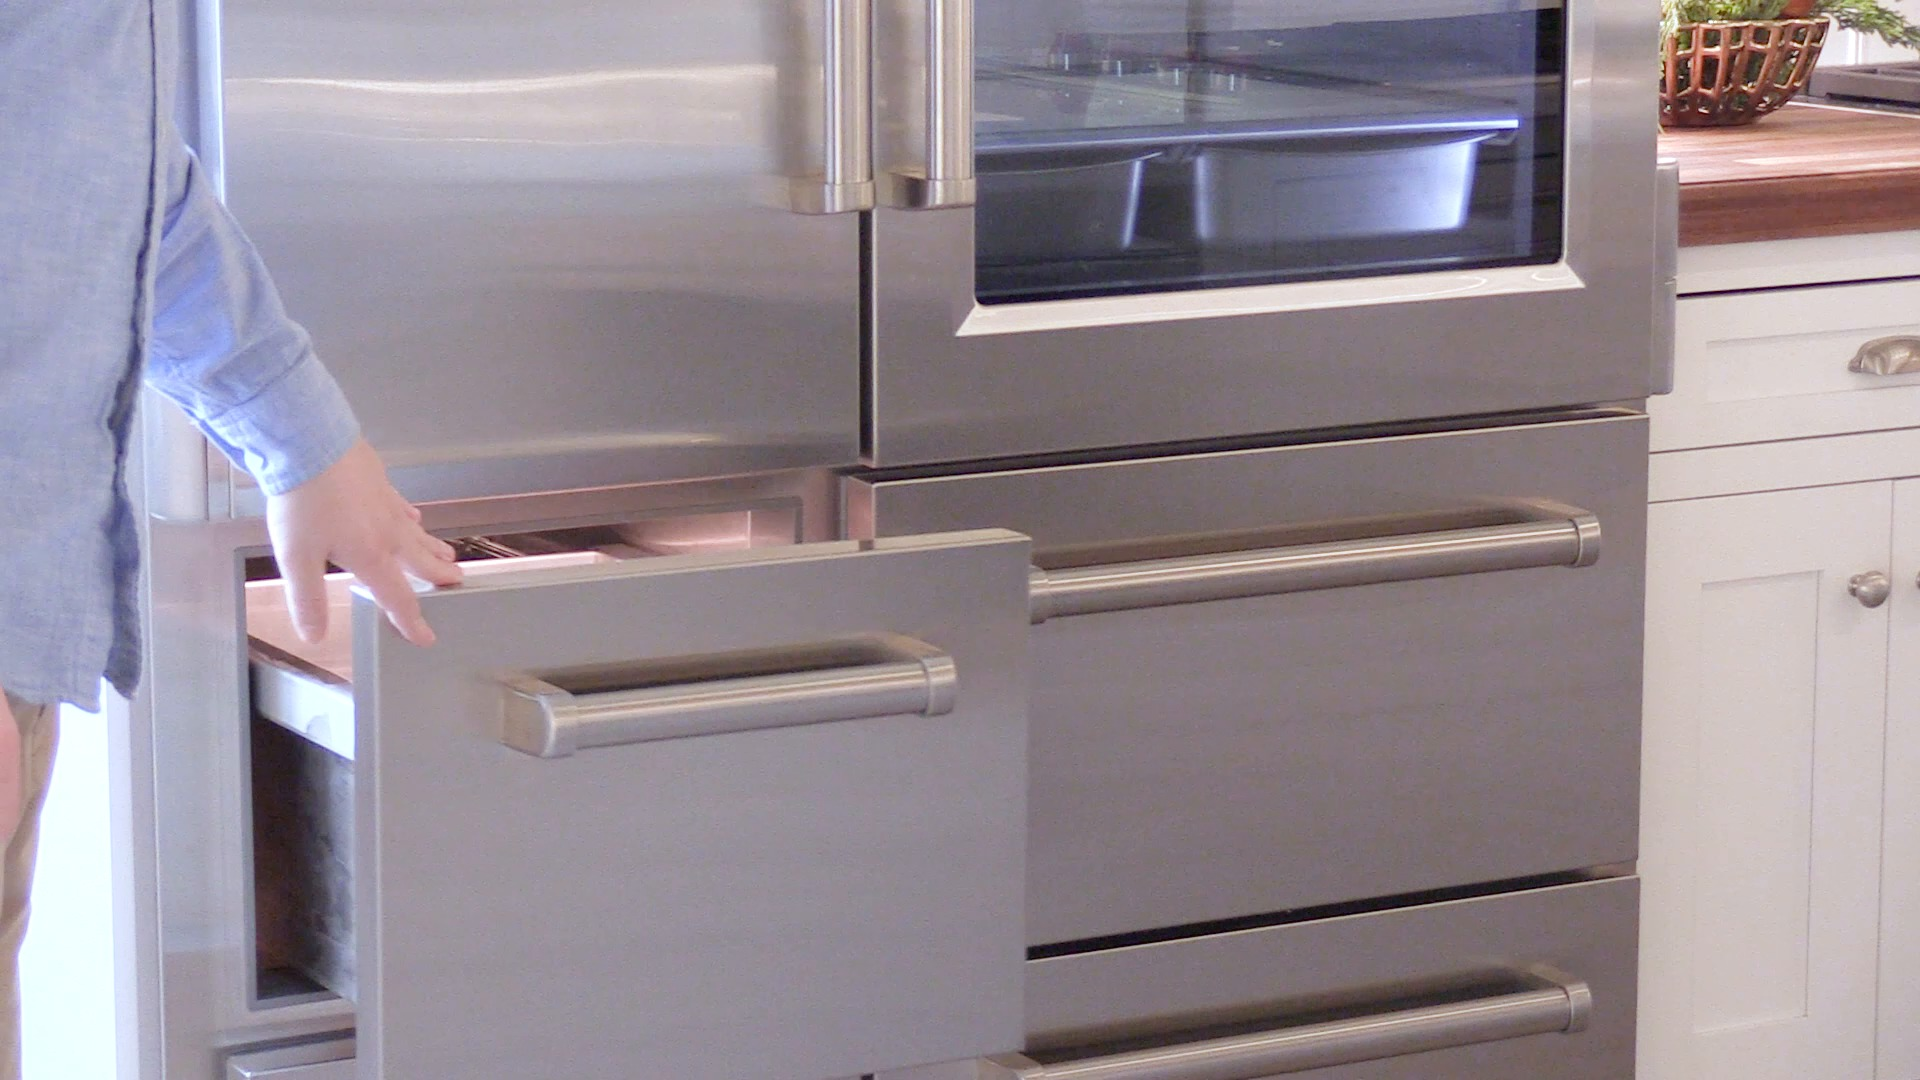 Counter Depth Refrigerators: KitchenAid, Maytag, Frigidaire, Bosch,  Jenn Air | Yale Appliance In MA